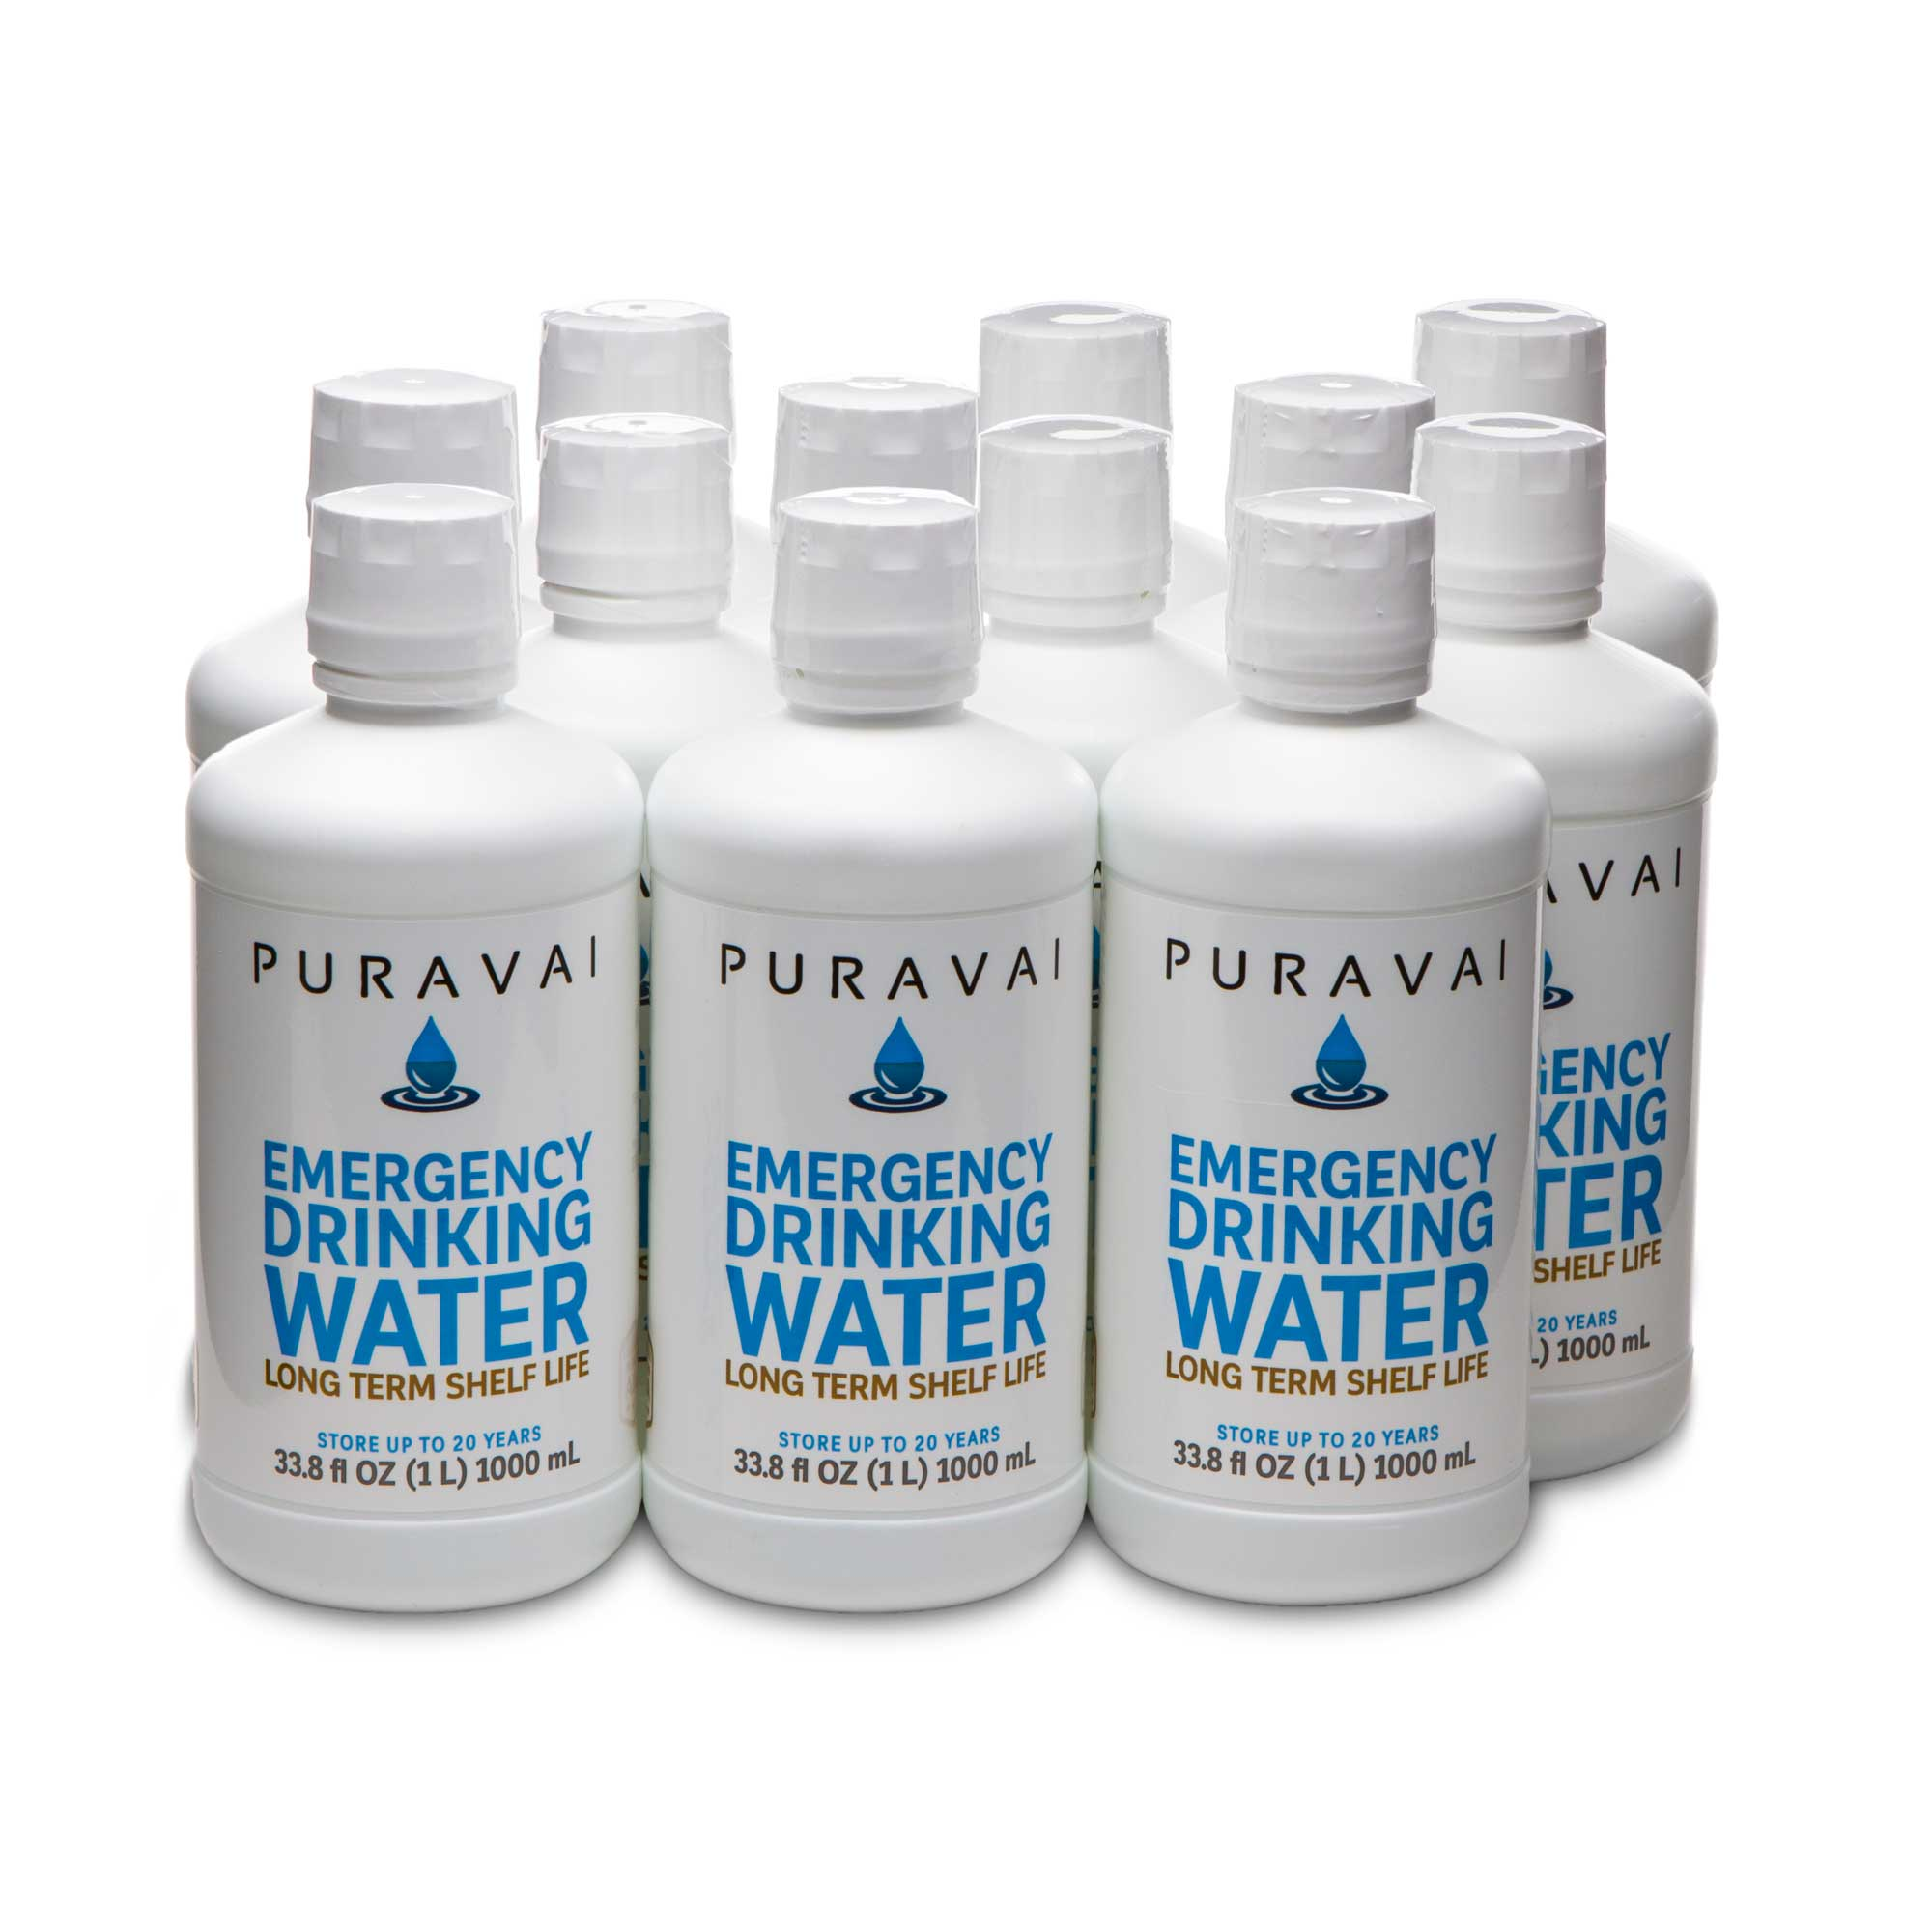 PURAVAI EMERGENCY DRINKING WATER 12 PK